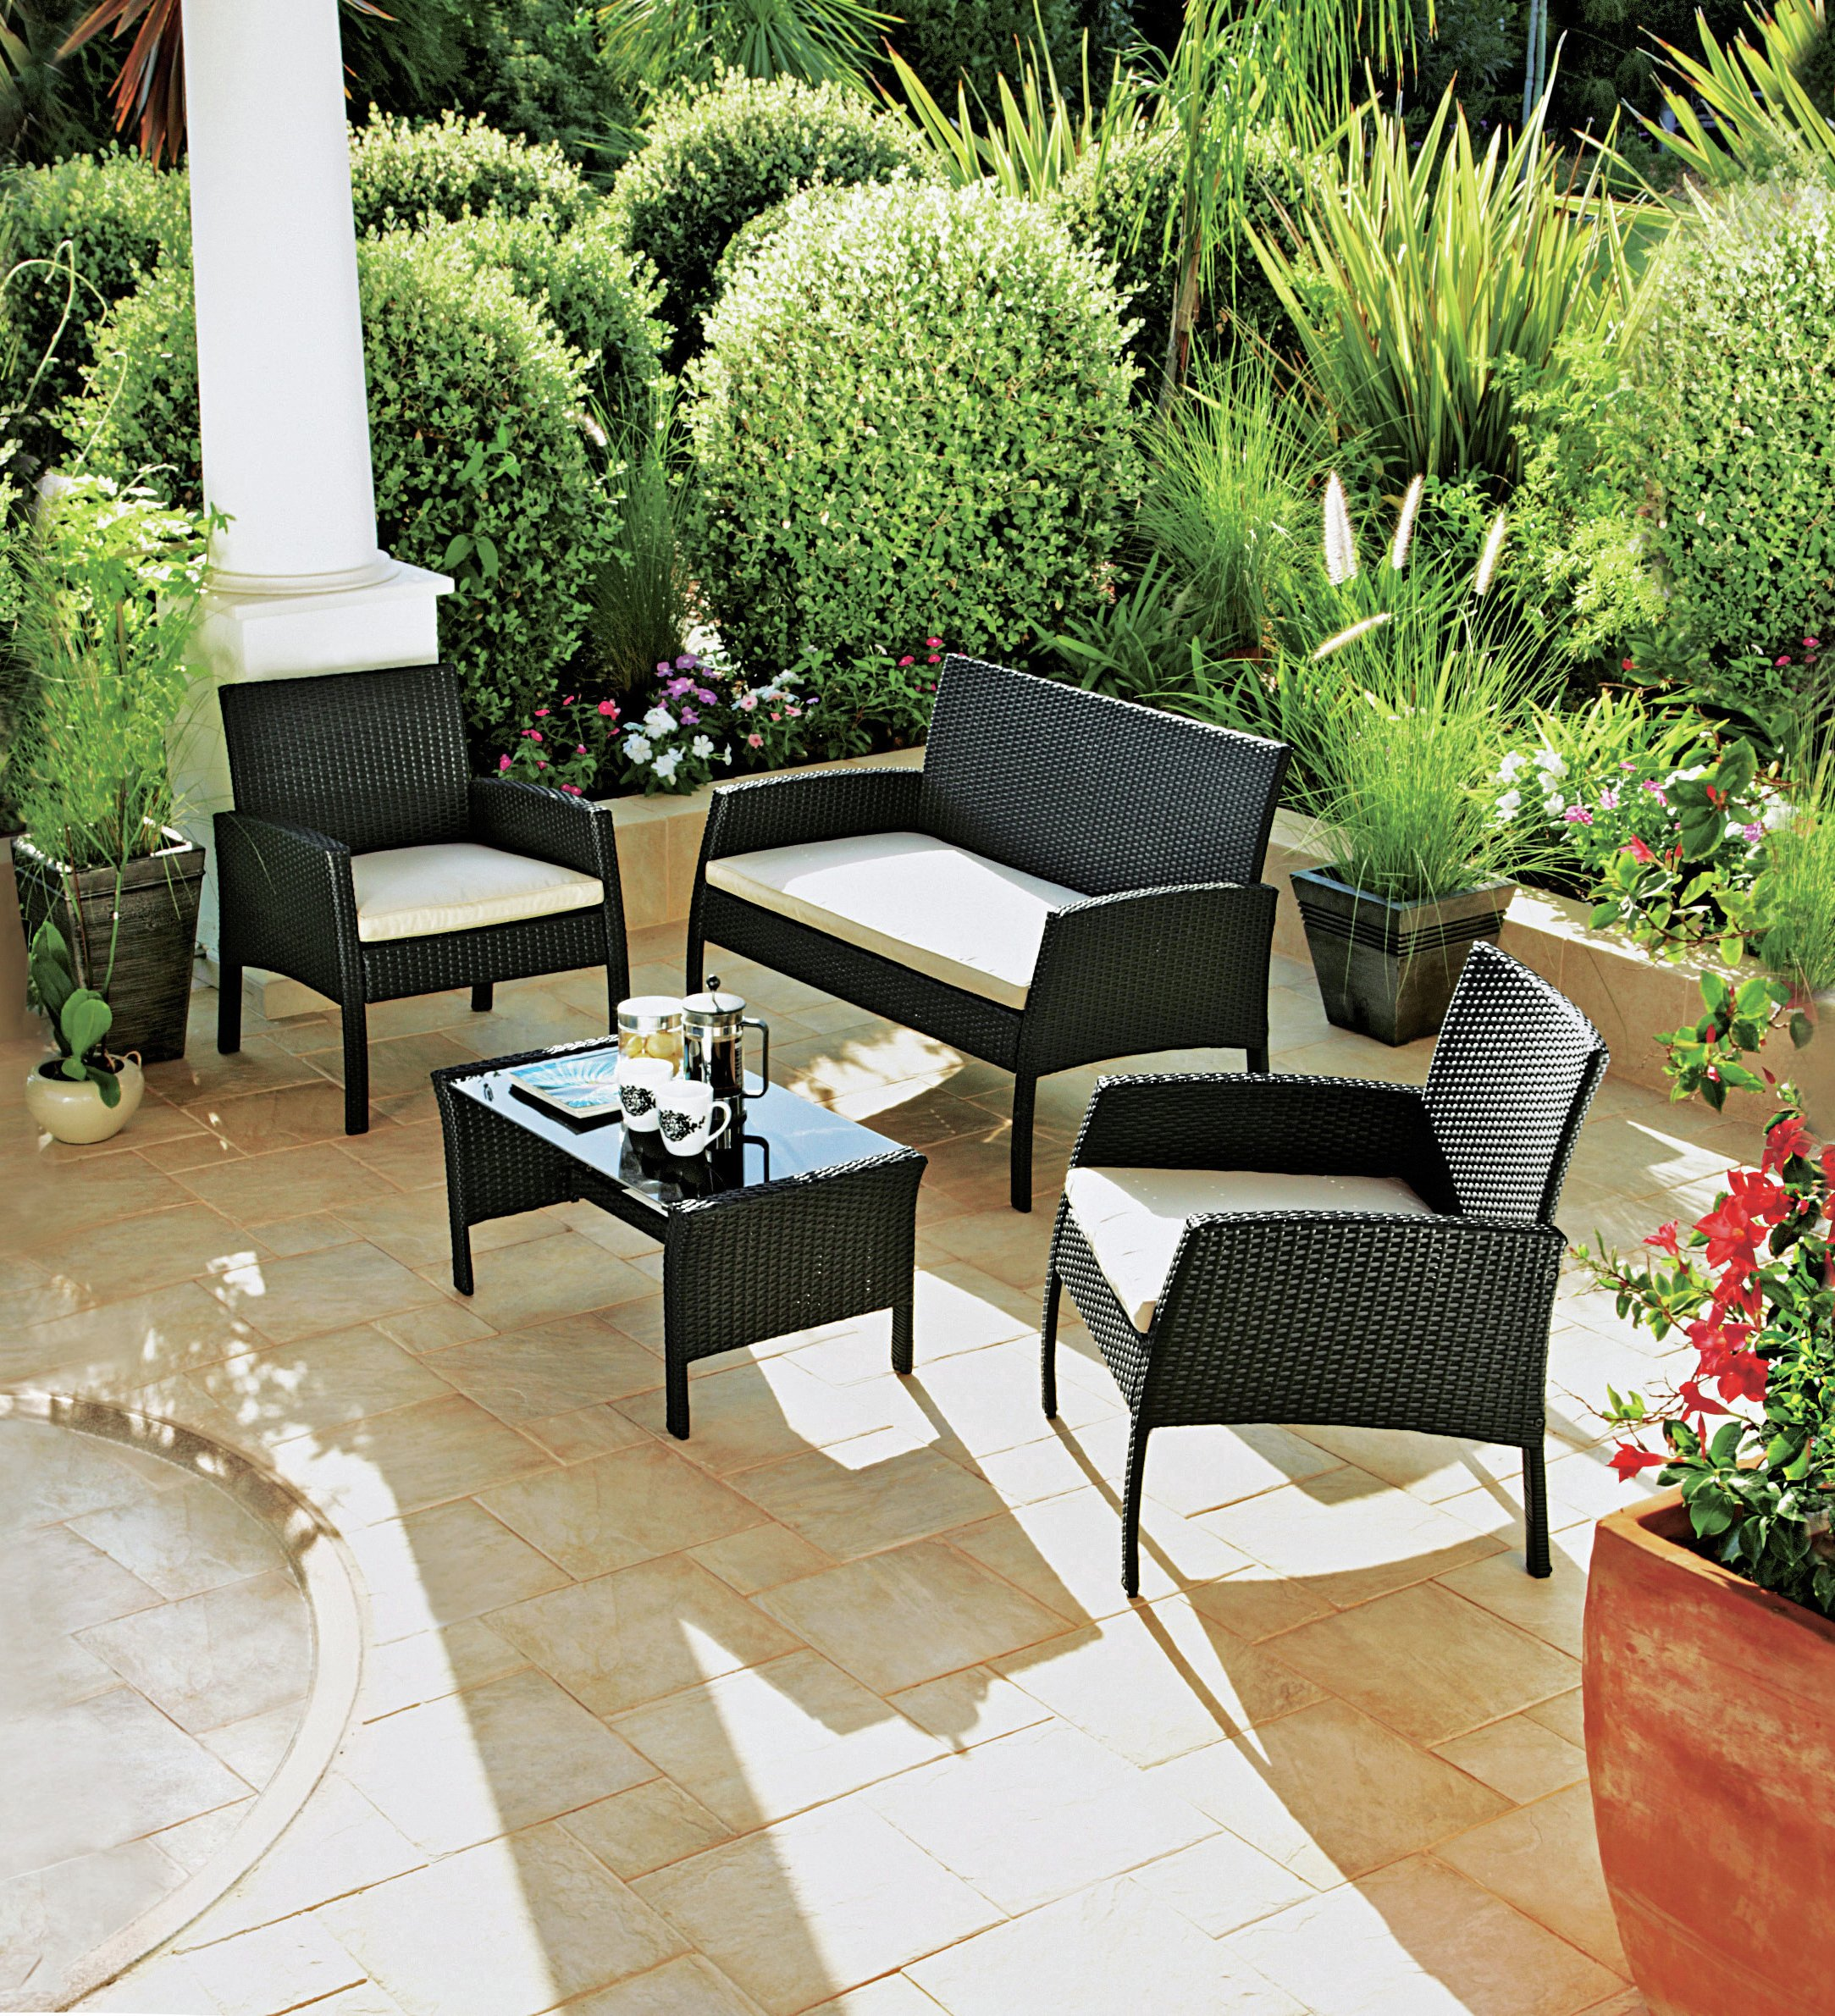 rattan effect 4 seater garden patio furniture set black rattan effect garden furniture find it